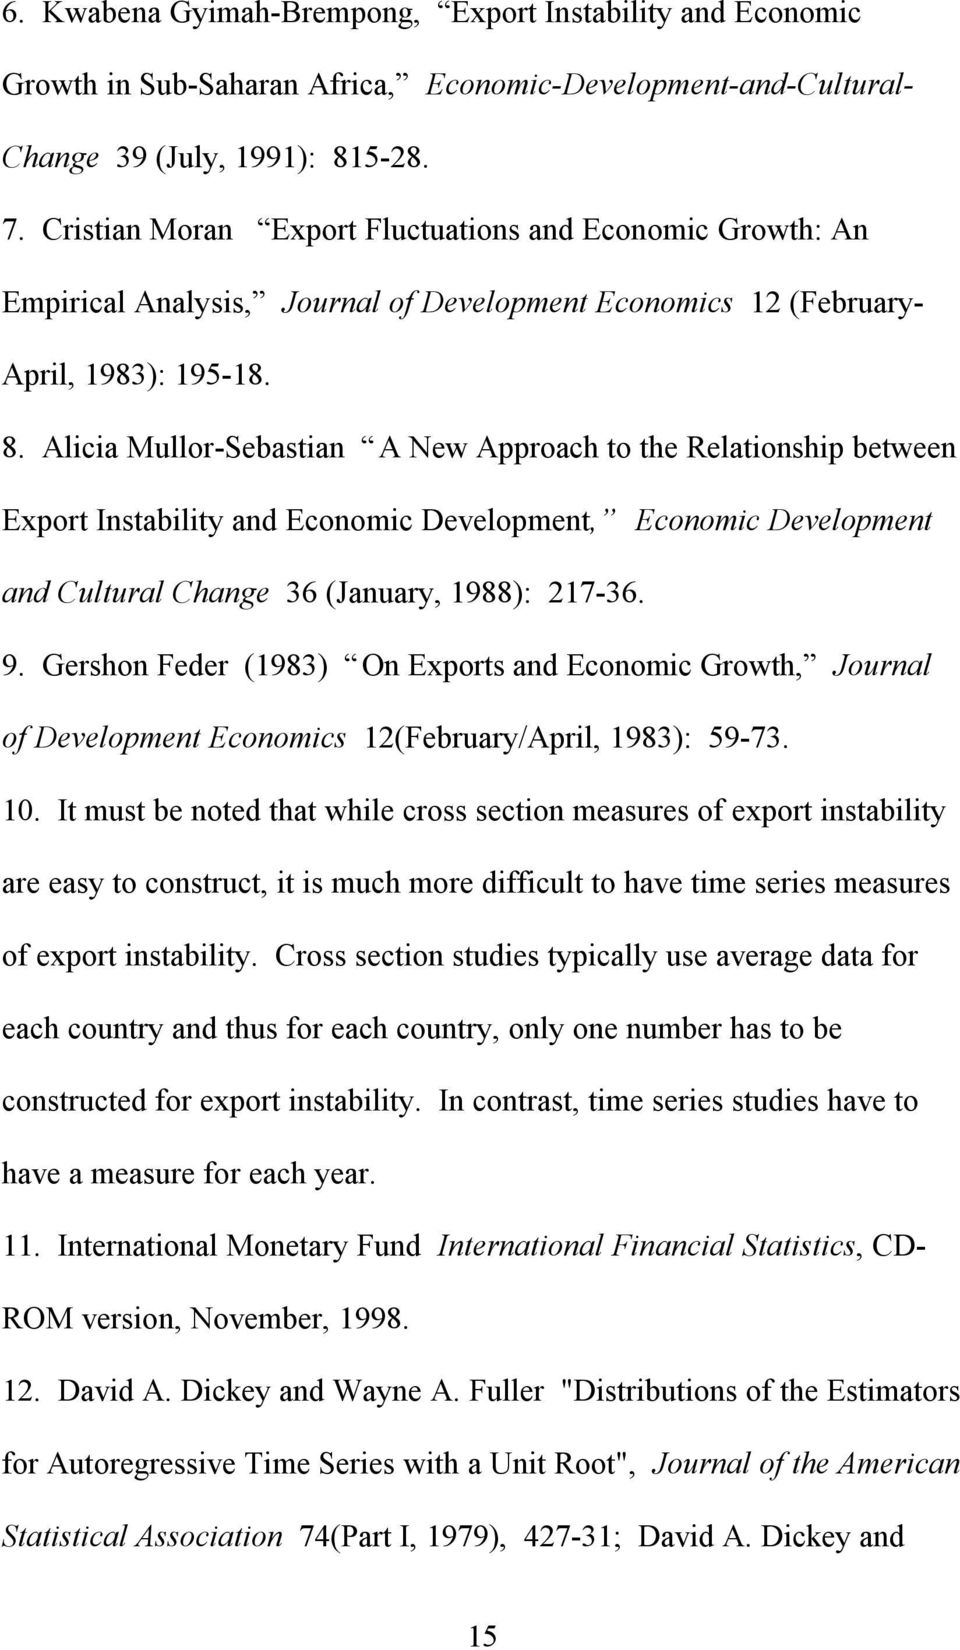 Alicia Mullor-Sebastian A New Approach to the Relationship between Export Instability and Economic Development, Economic Development and Cultural Change 36 (January, 1988): 217-36. 9.